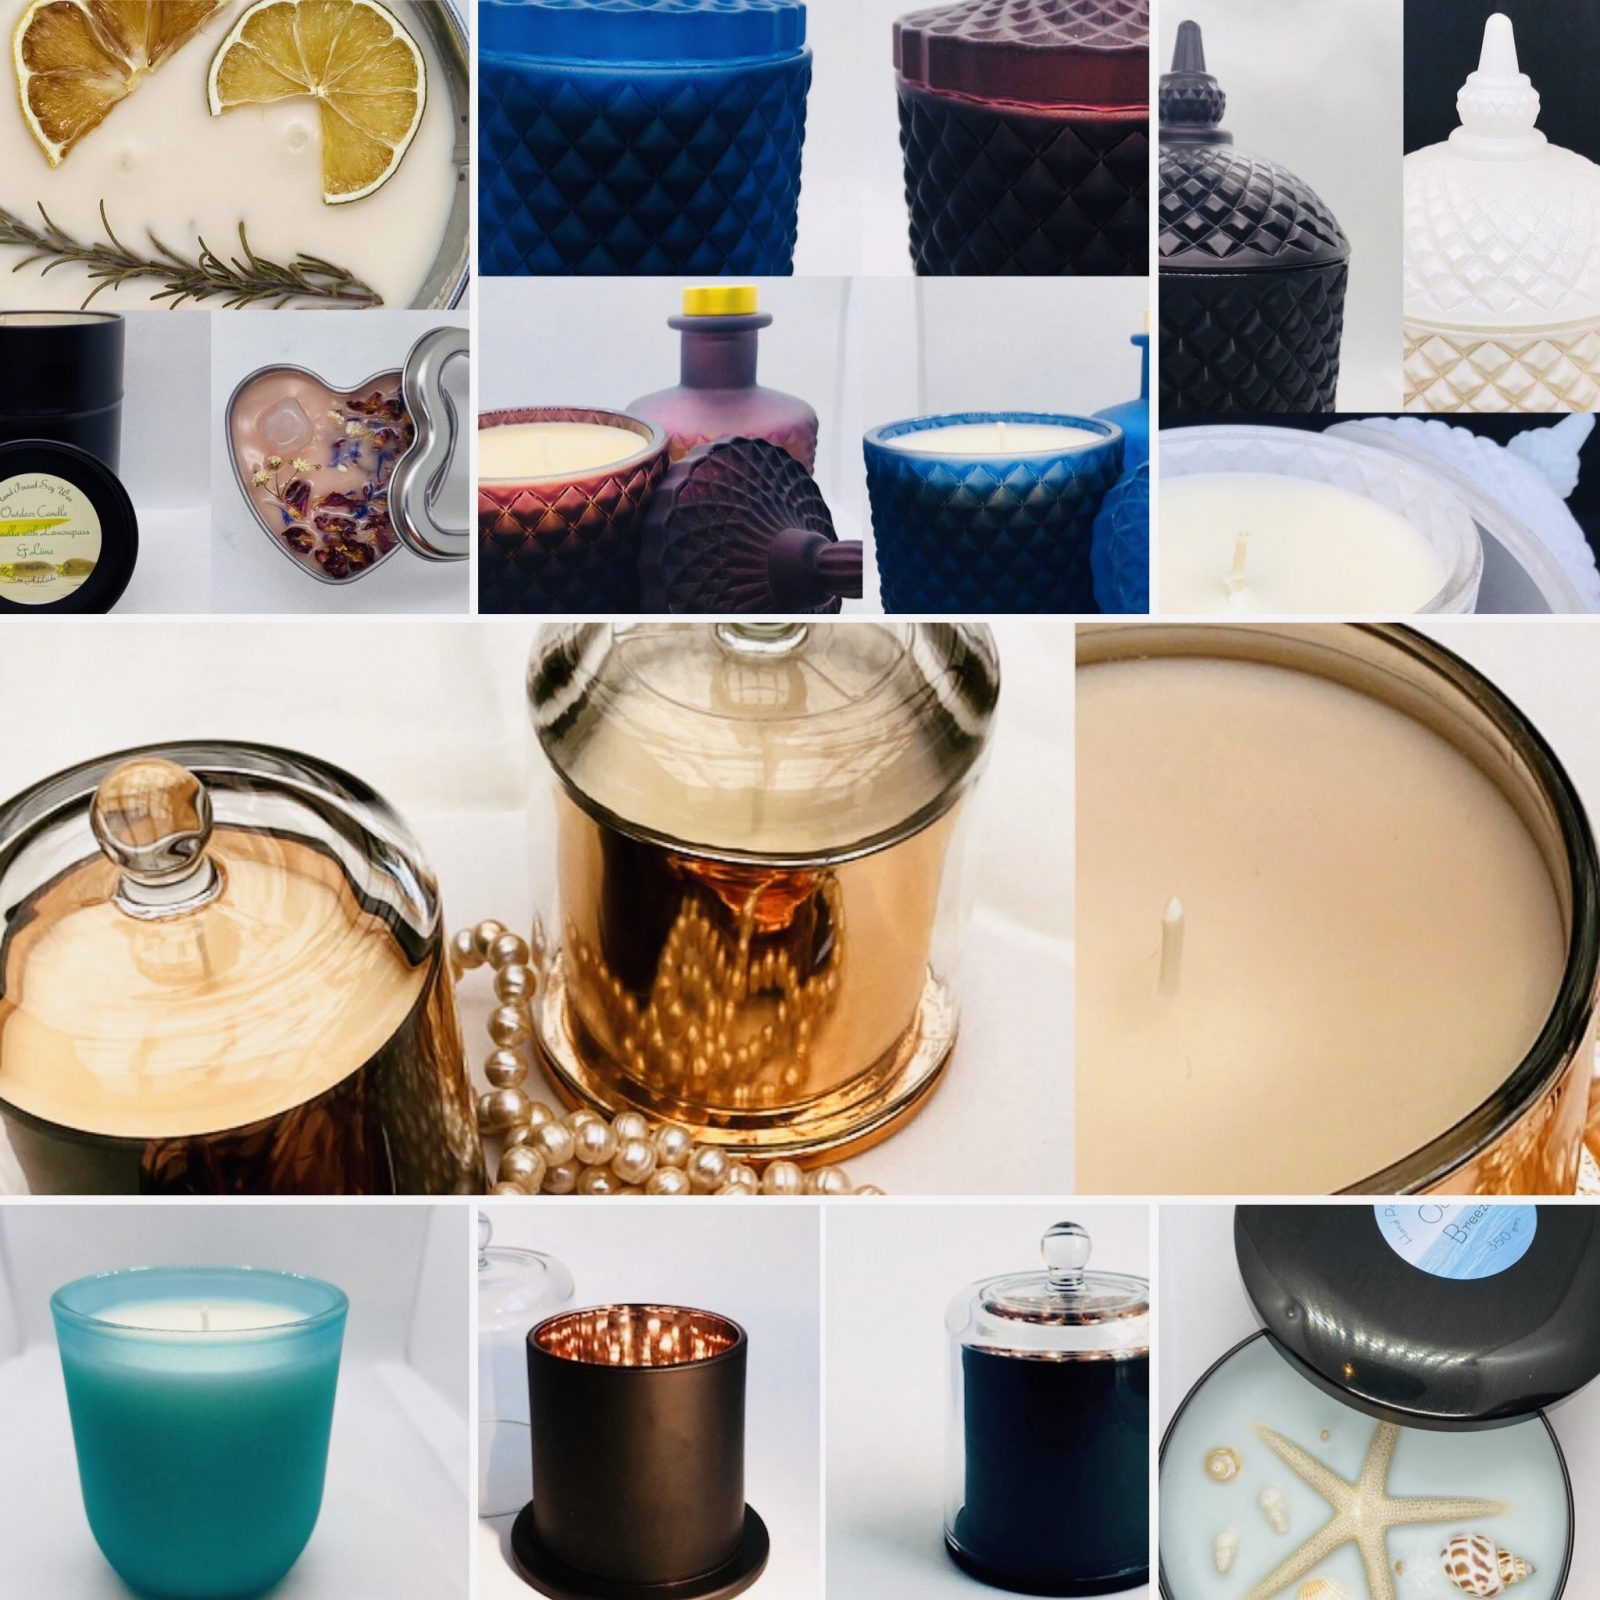 Collage of some of the beautiful candles made by Scentsory